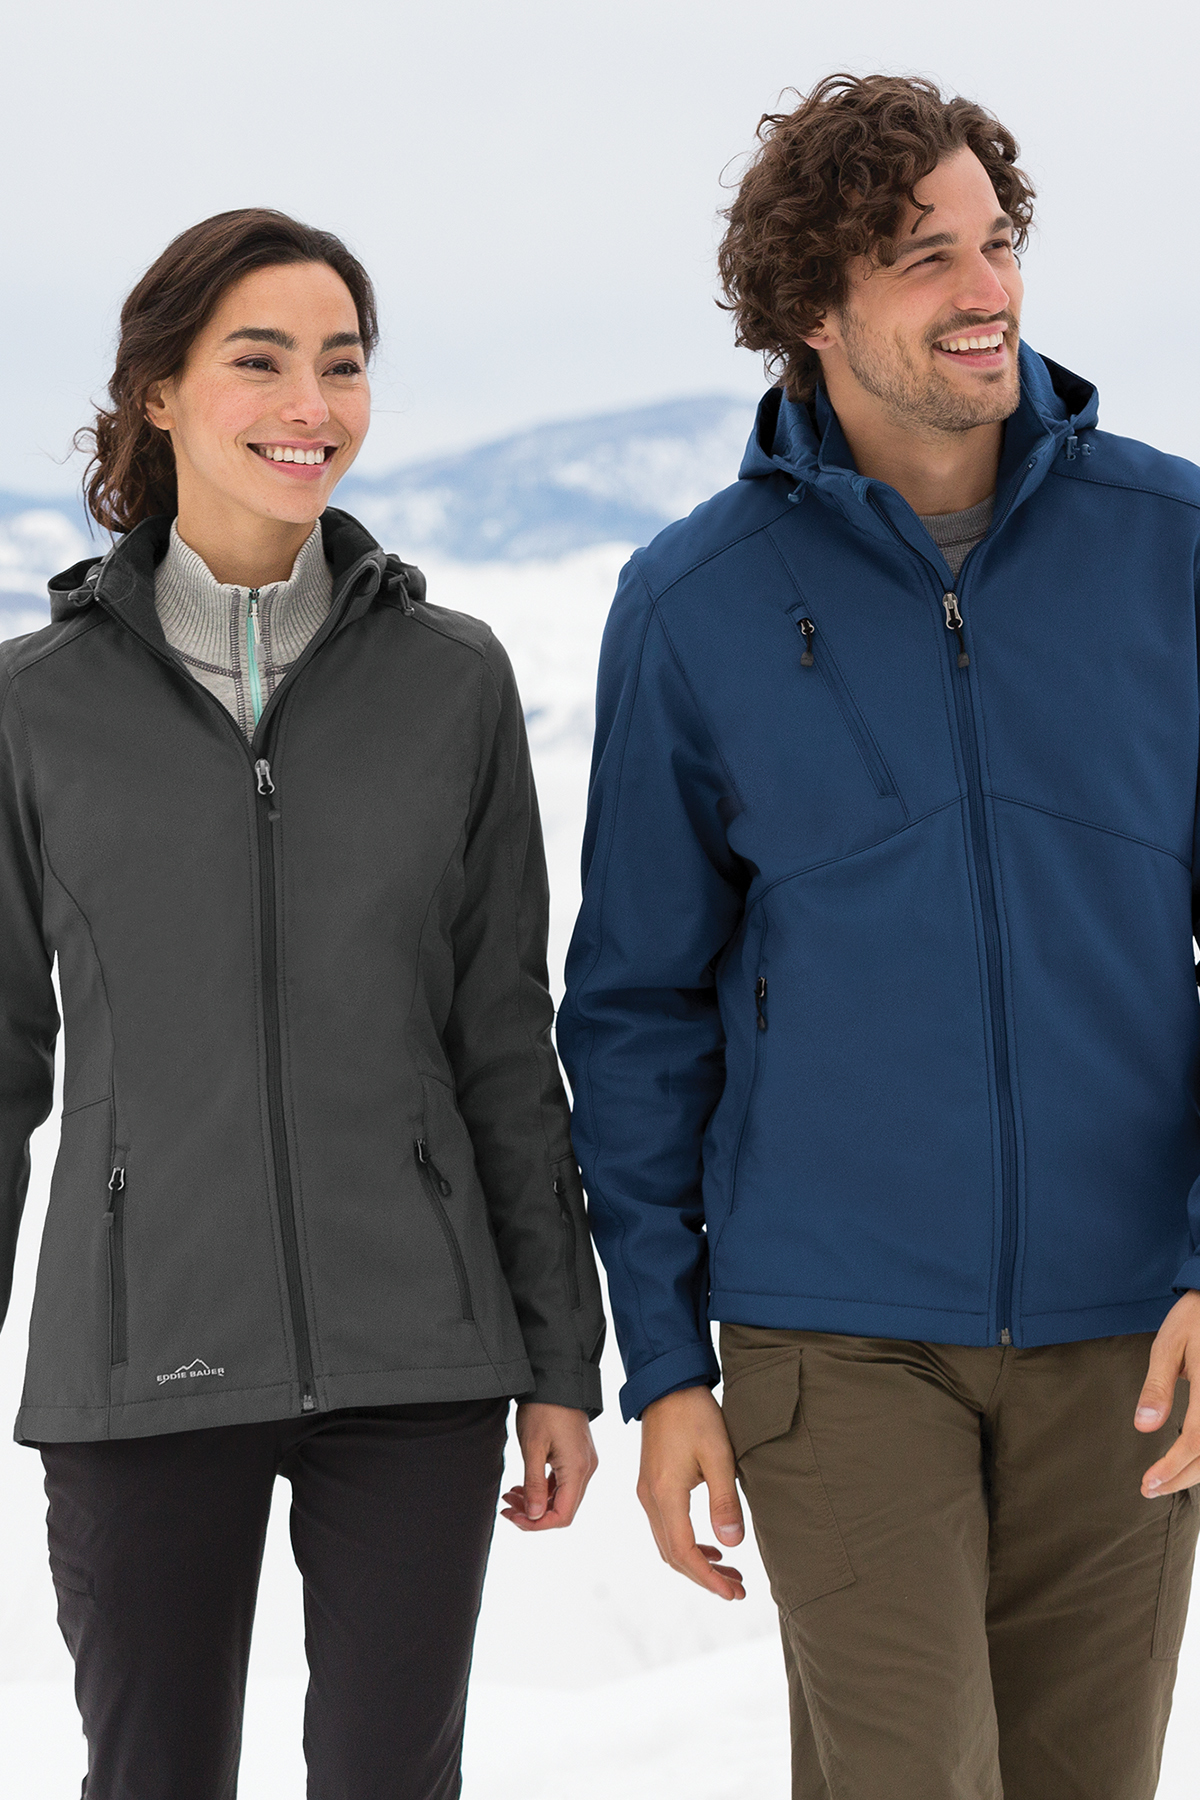 294ae469422 ... Eddie Bauer® Ladies Hooded Soft Shell Parka. A maximum of 8 logos have  been uploaded. Please remove a logo from My Logos to continue